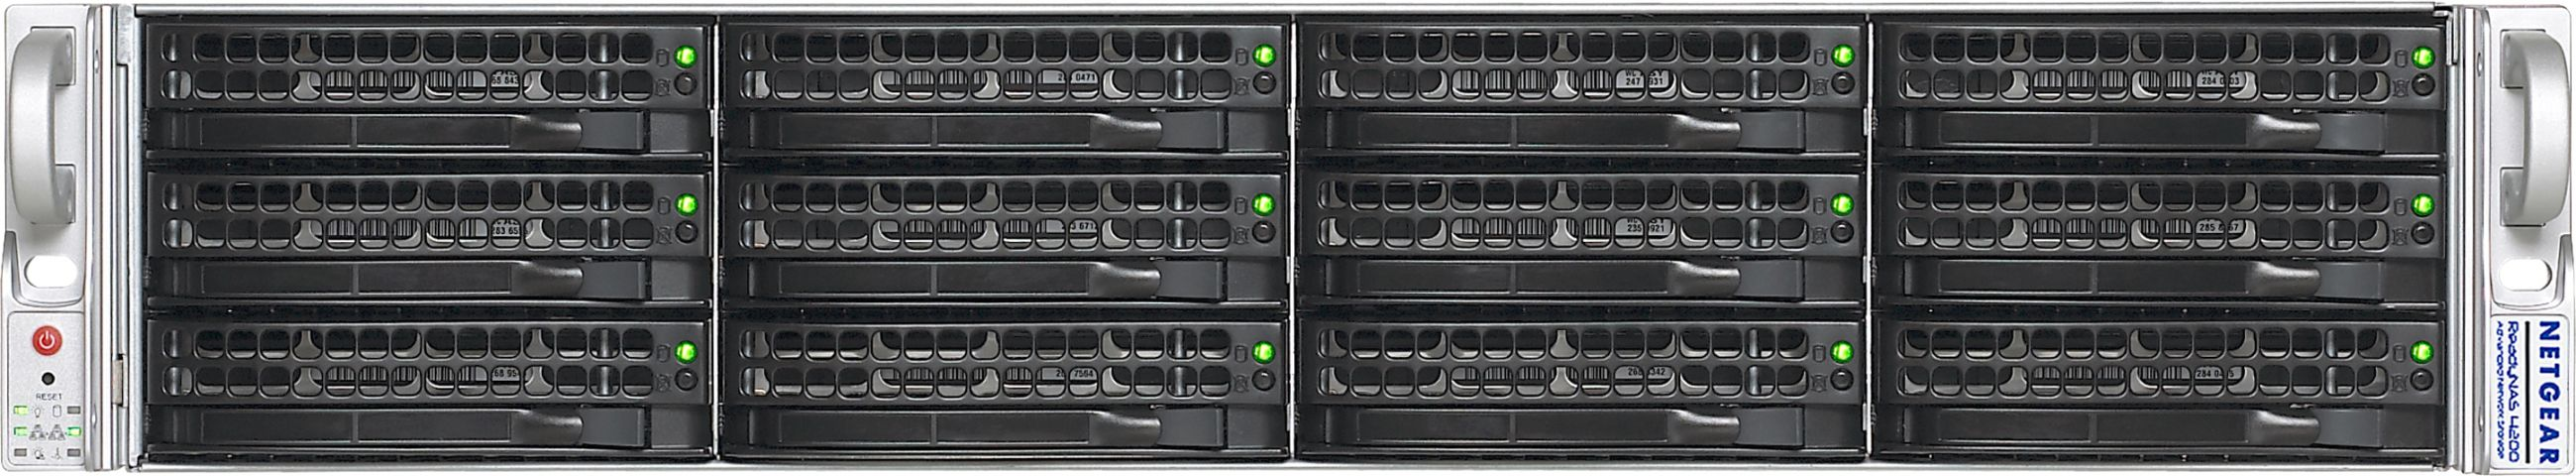 24TB network storage system with optional 10GBE support - RN12T1220